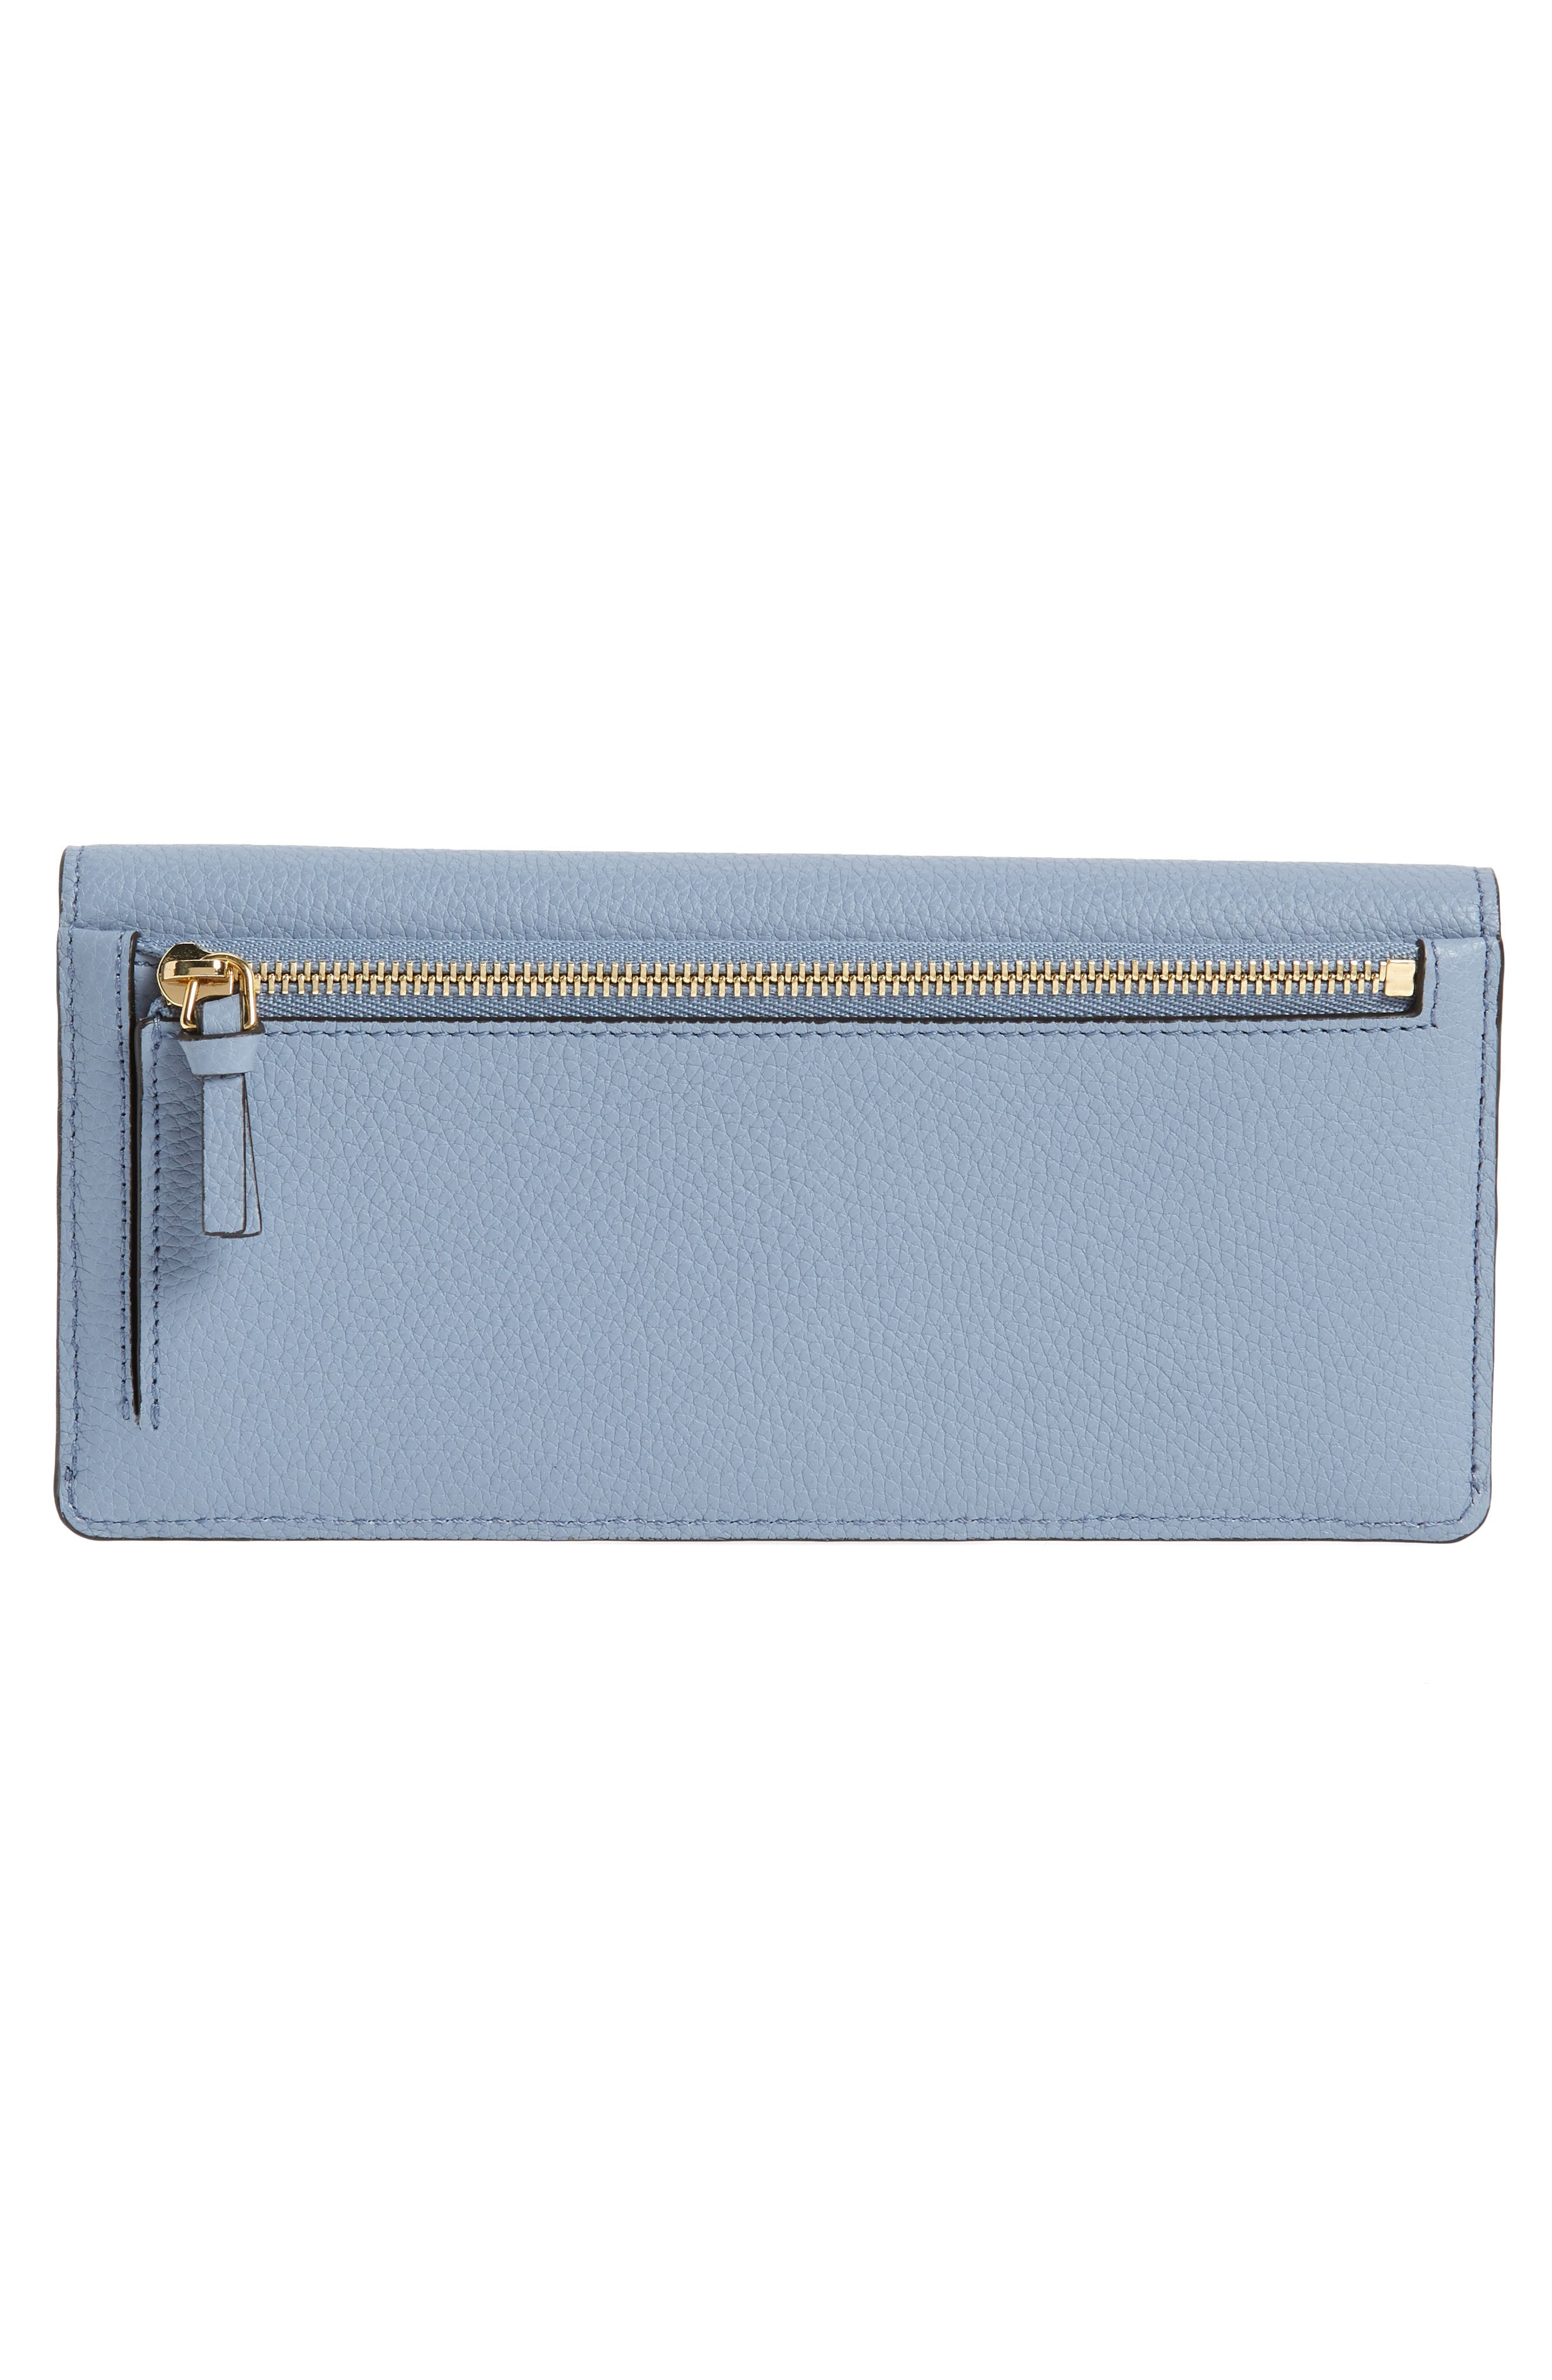 Georgia Continental Leather Wallet,                             Alternate thumbnail 3, color,                             Washed Blue